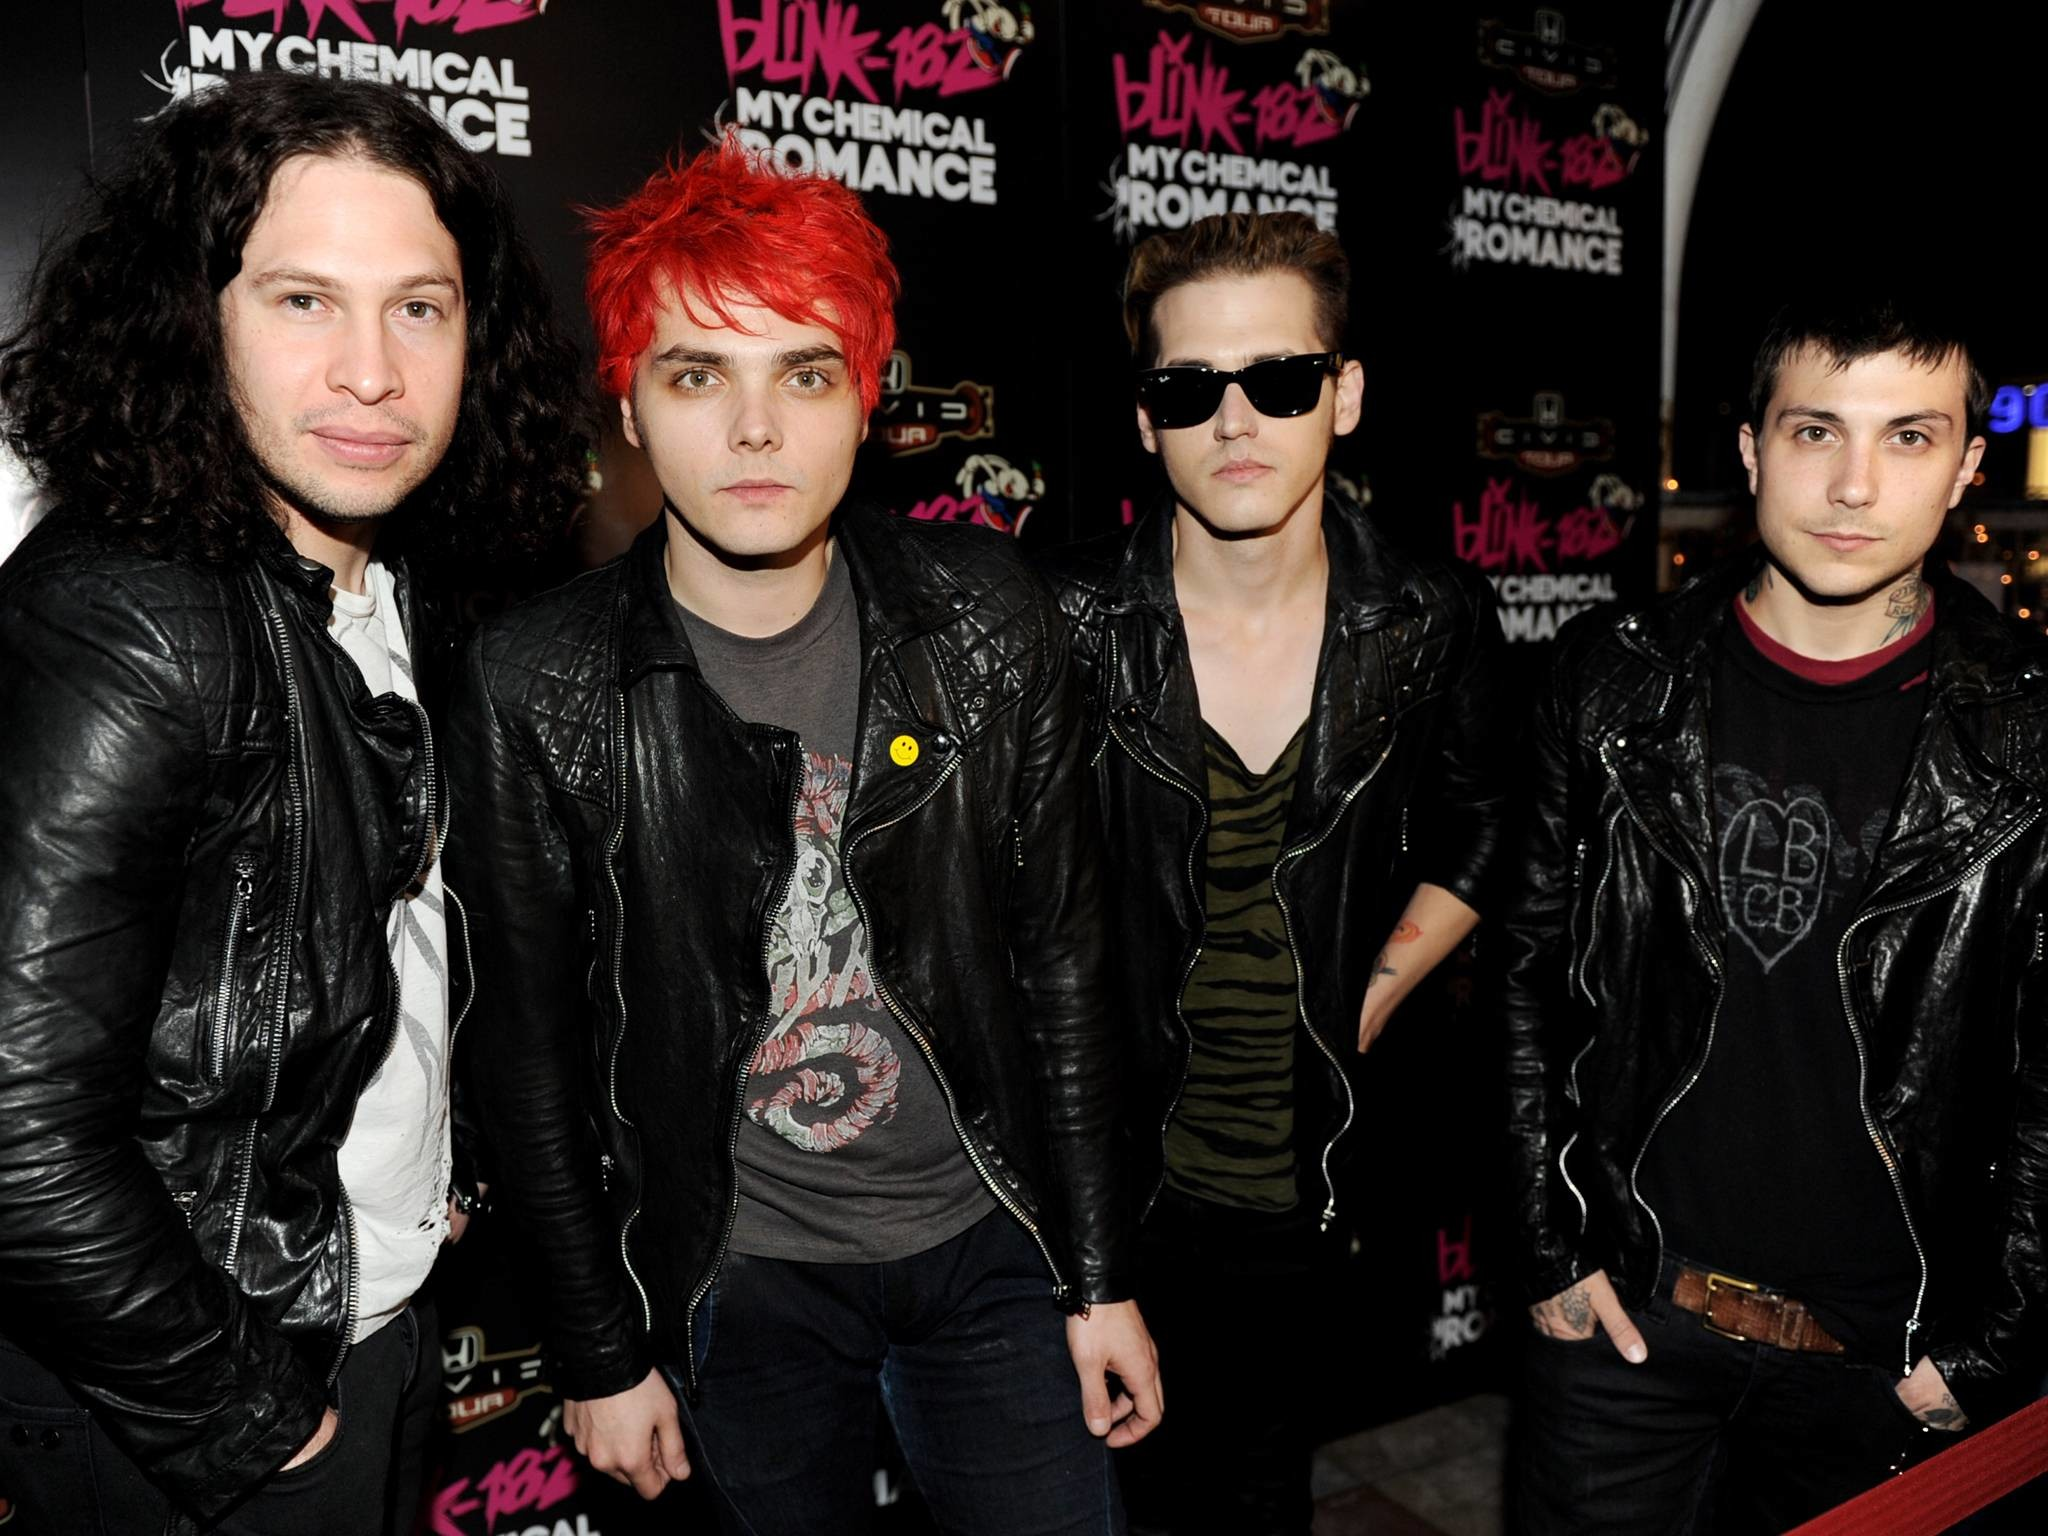 149 best My Chemical Romance images on Pinterest | Emo bands, Music bands  and Killjoys